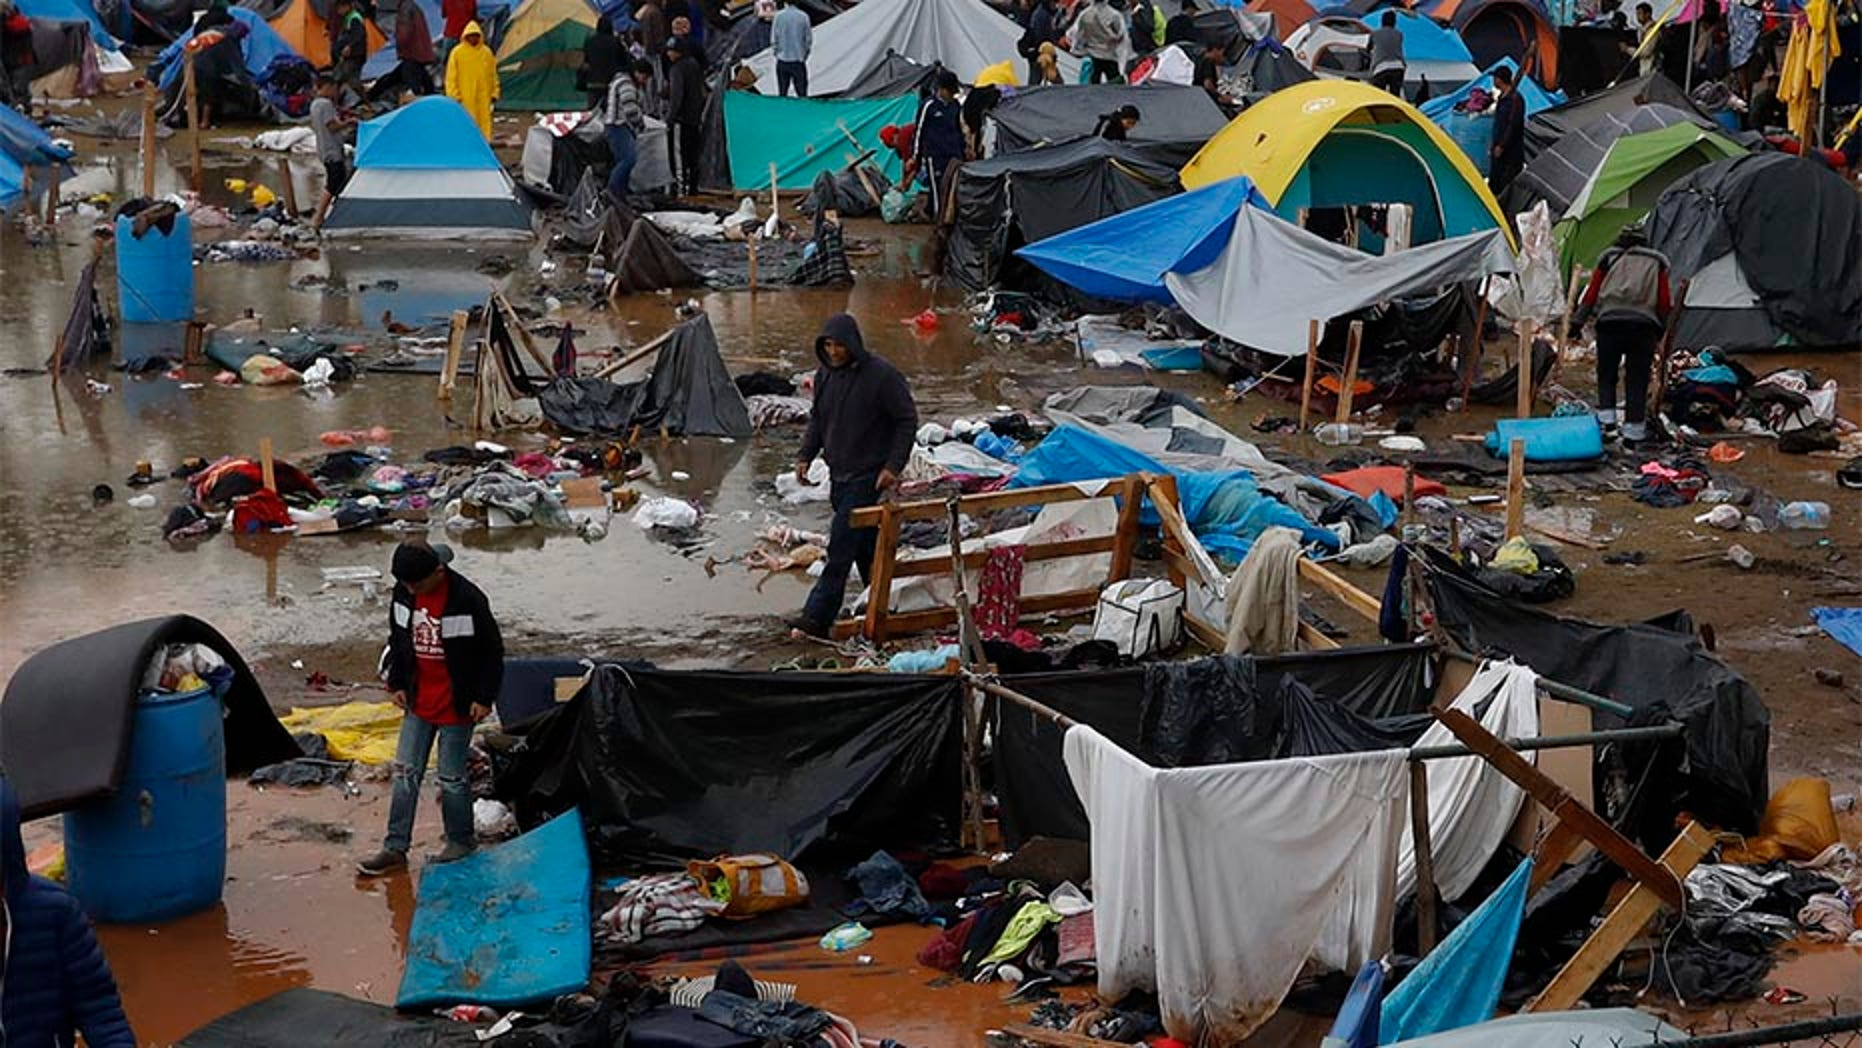 Migrants walk amidst flooded tents after heavy rains poured down on a sports complex that was sheltering thousands of Central Americans in Tijuana, Mexico.